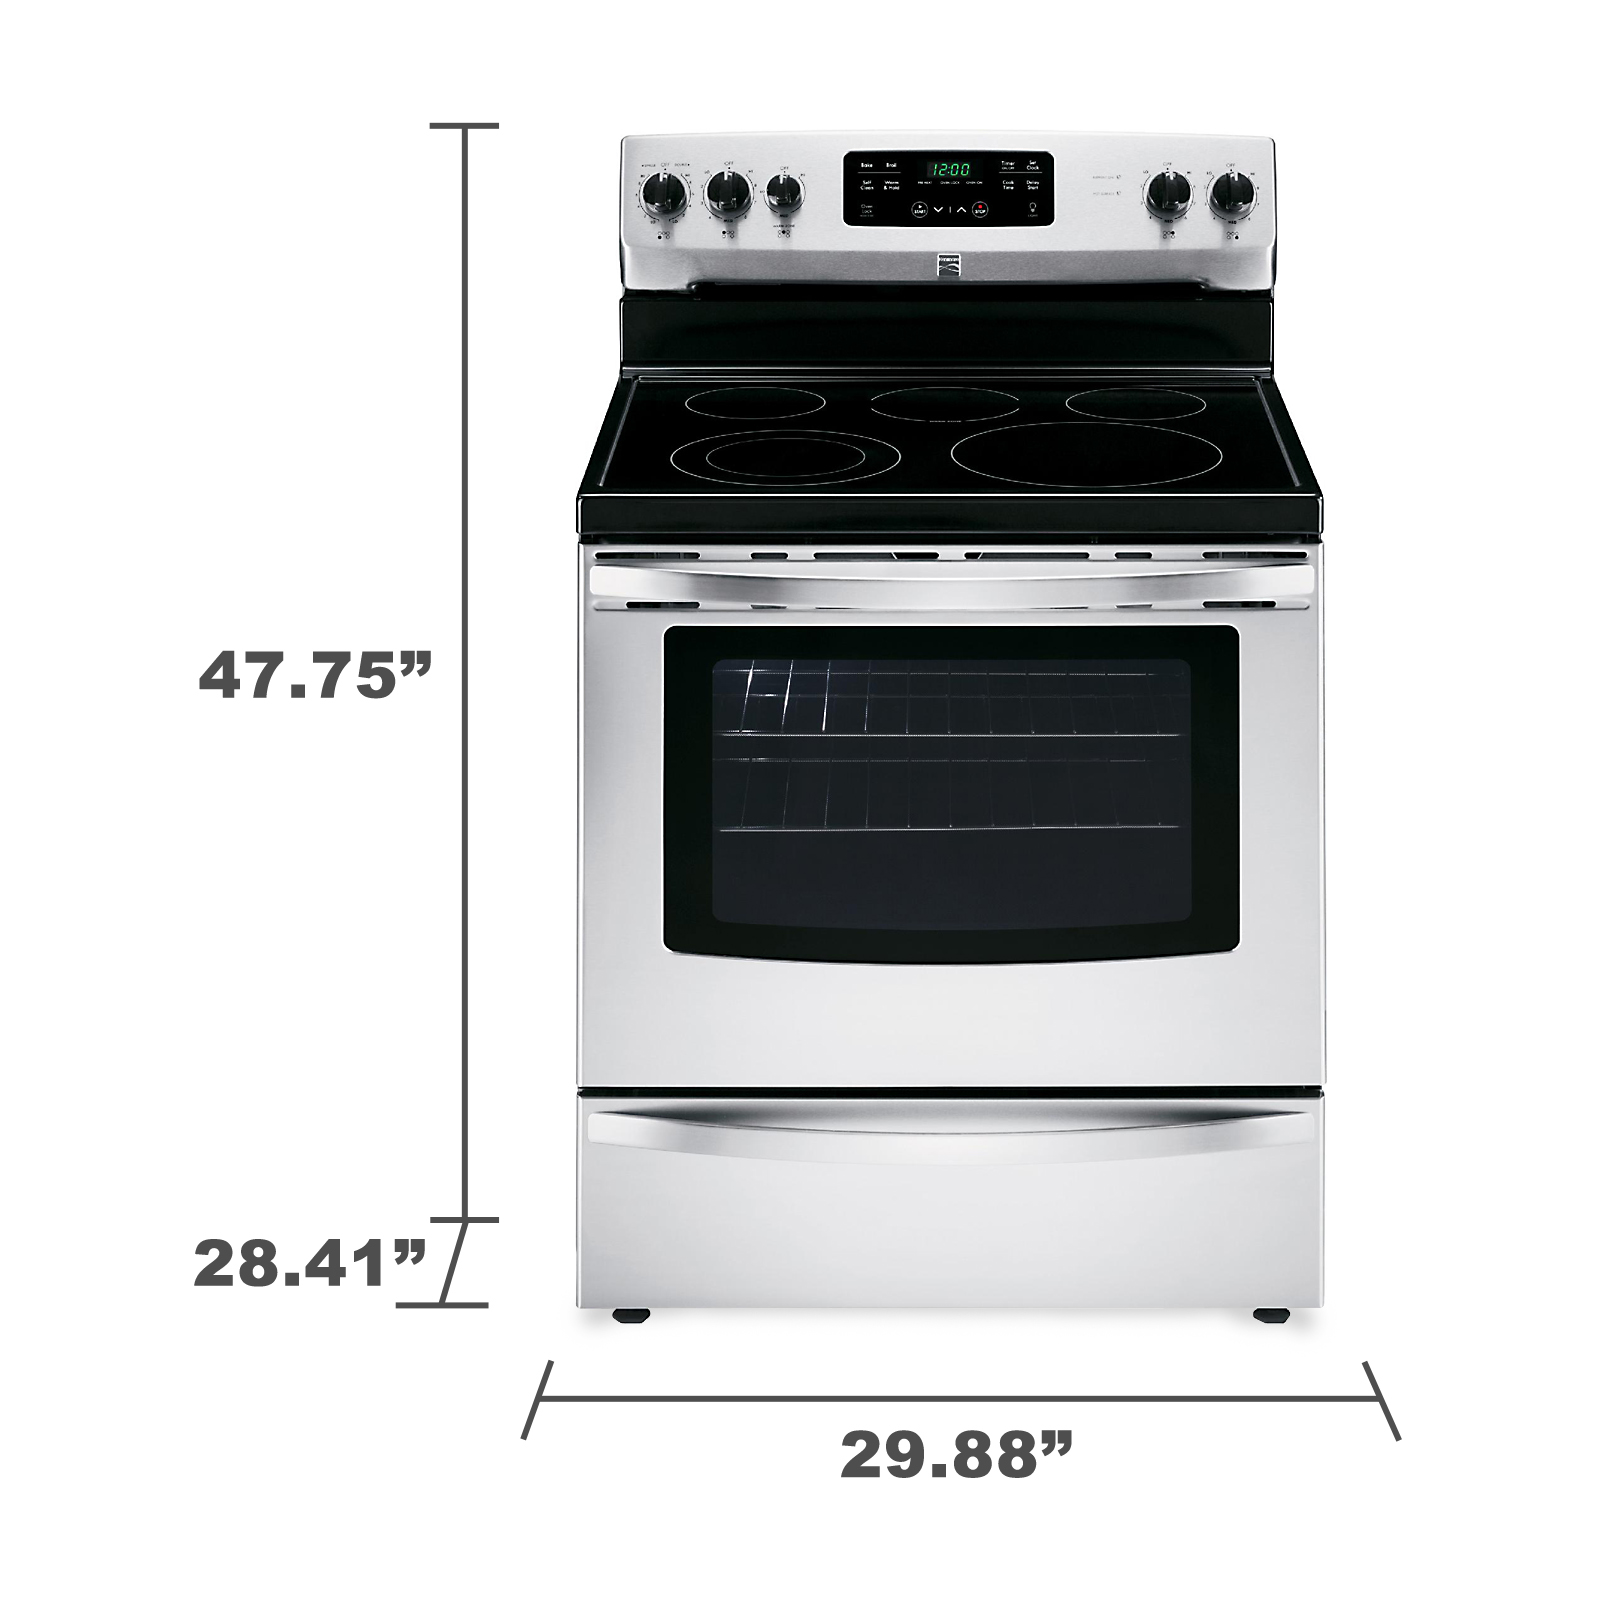 Kenmore 94183 5.4 cu. ft. Electric Range - Stainless Steel